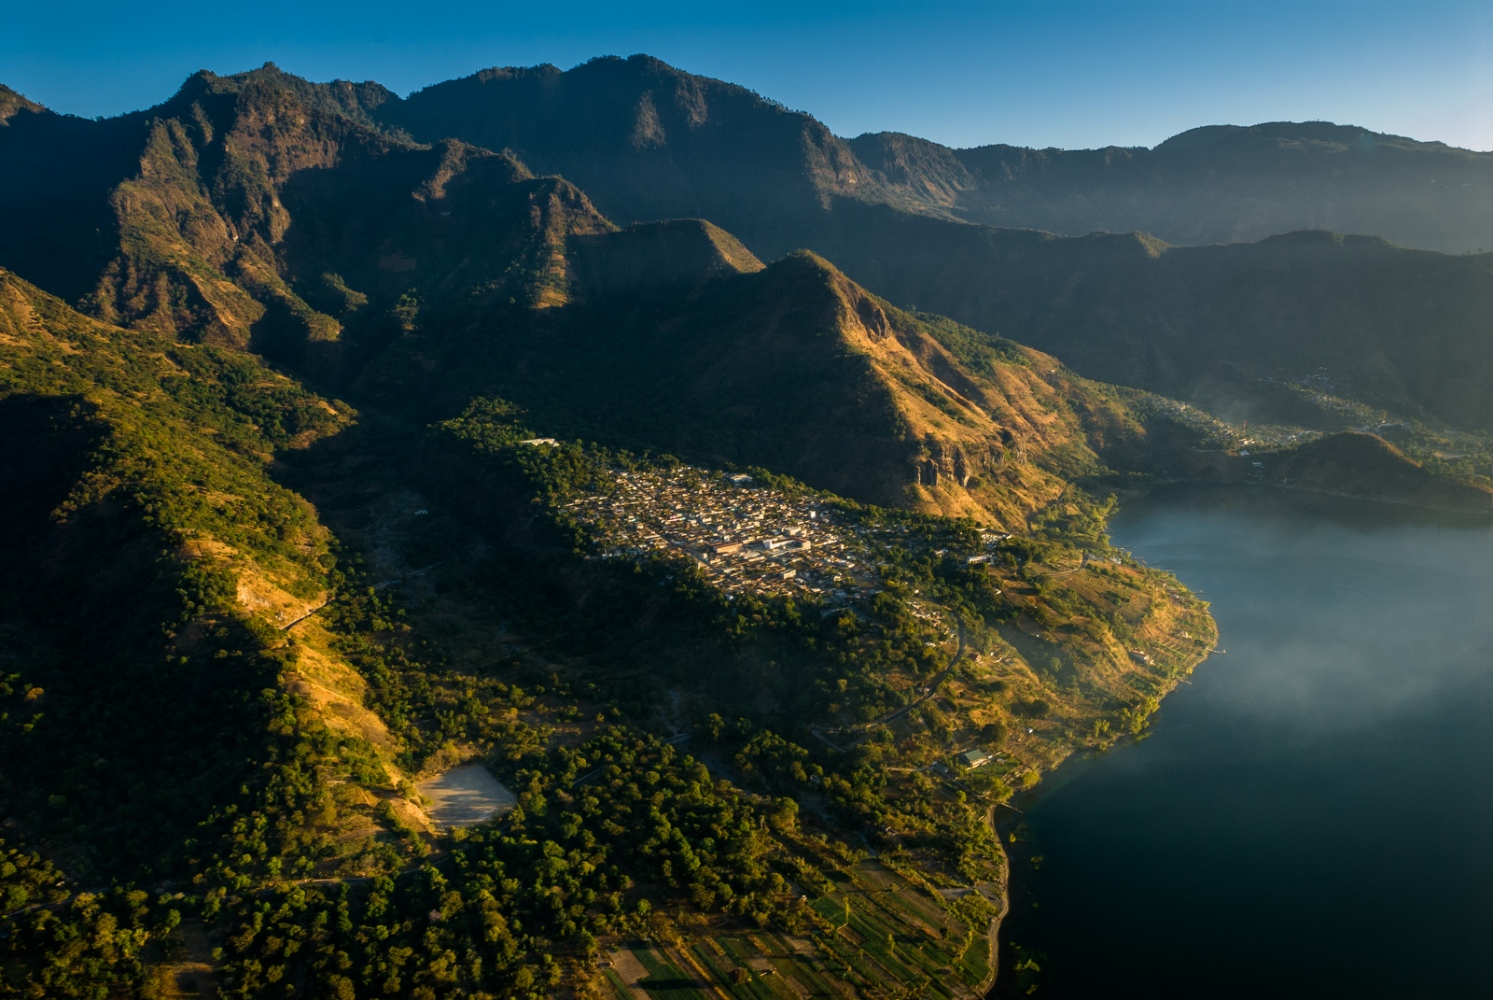 The town of San Pablo La Laguna on the shores of Lake Atitlán, Guatemala.